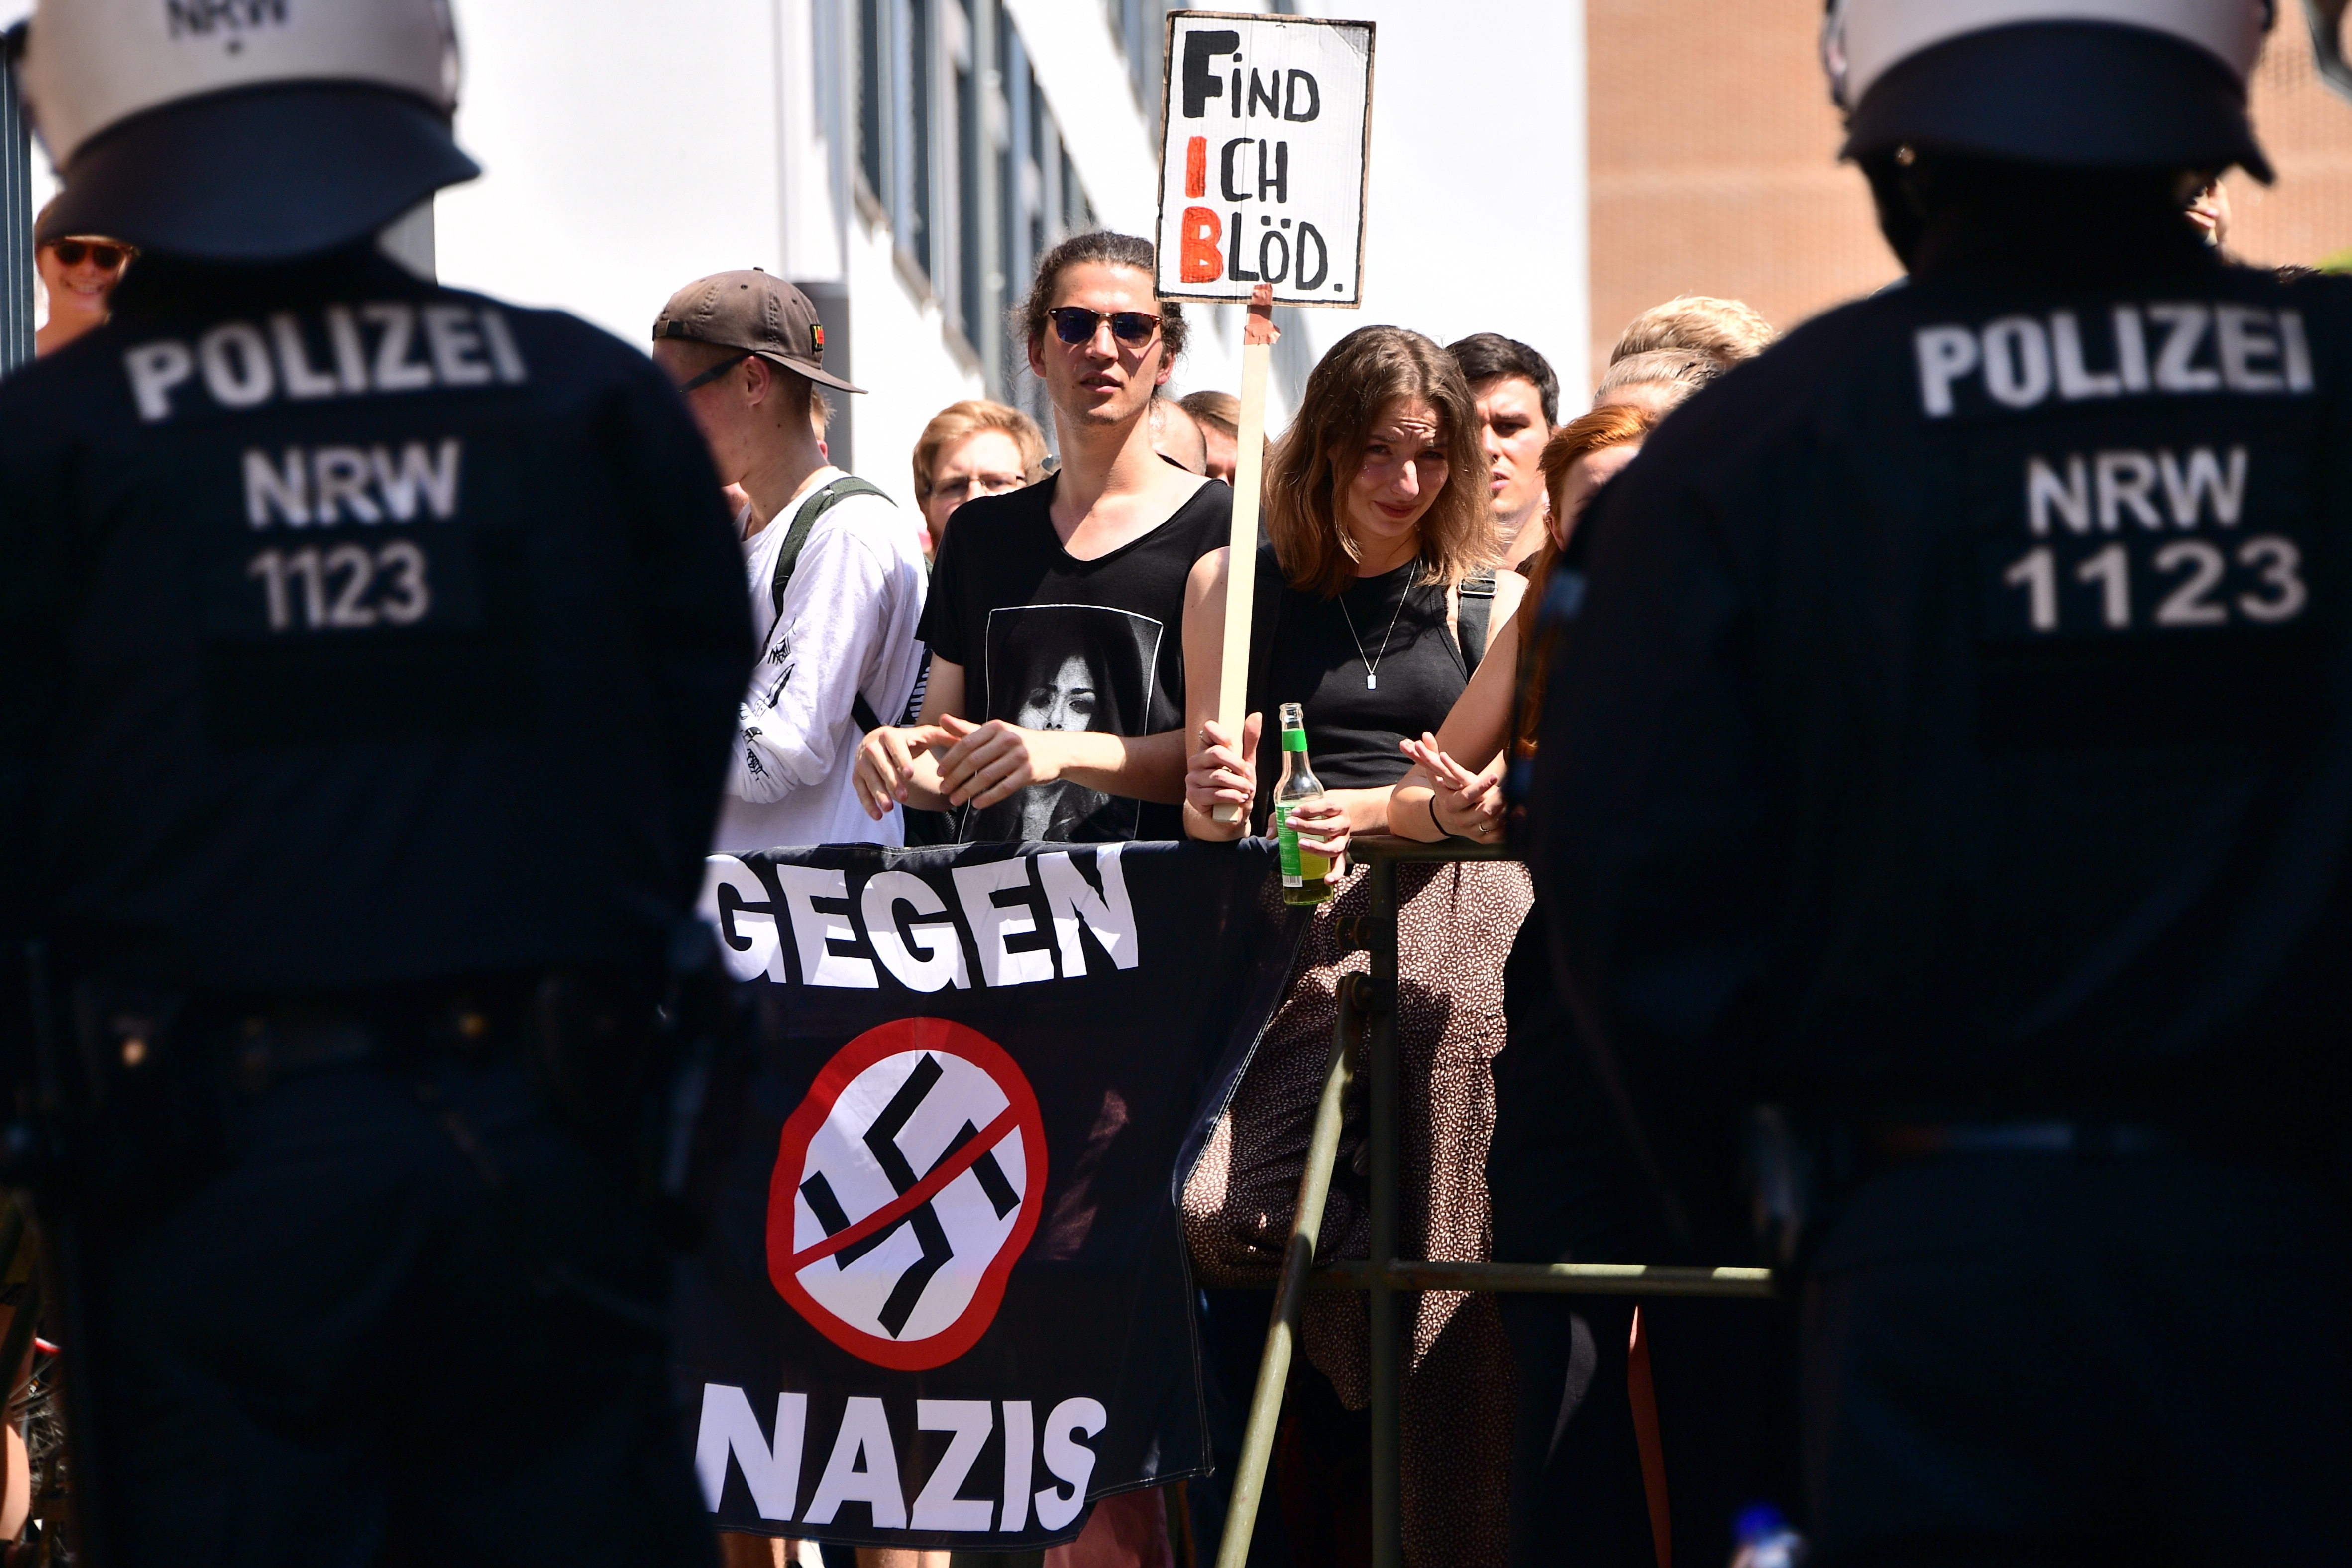 Anti-Nazi protesters and police are seen in Halle, Germany.